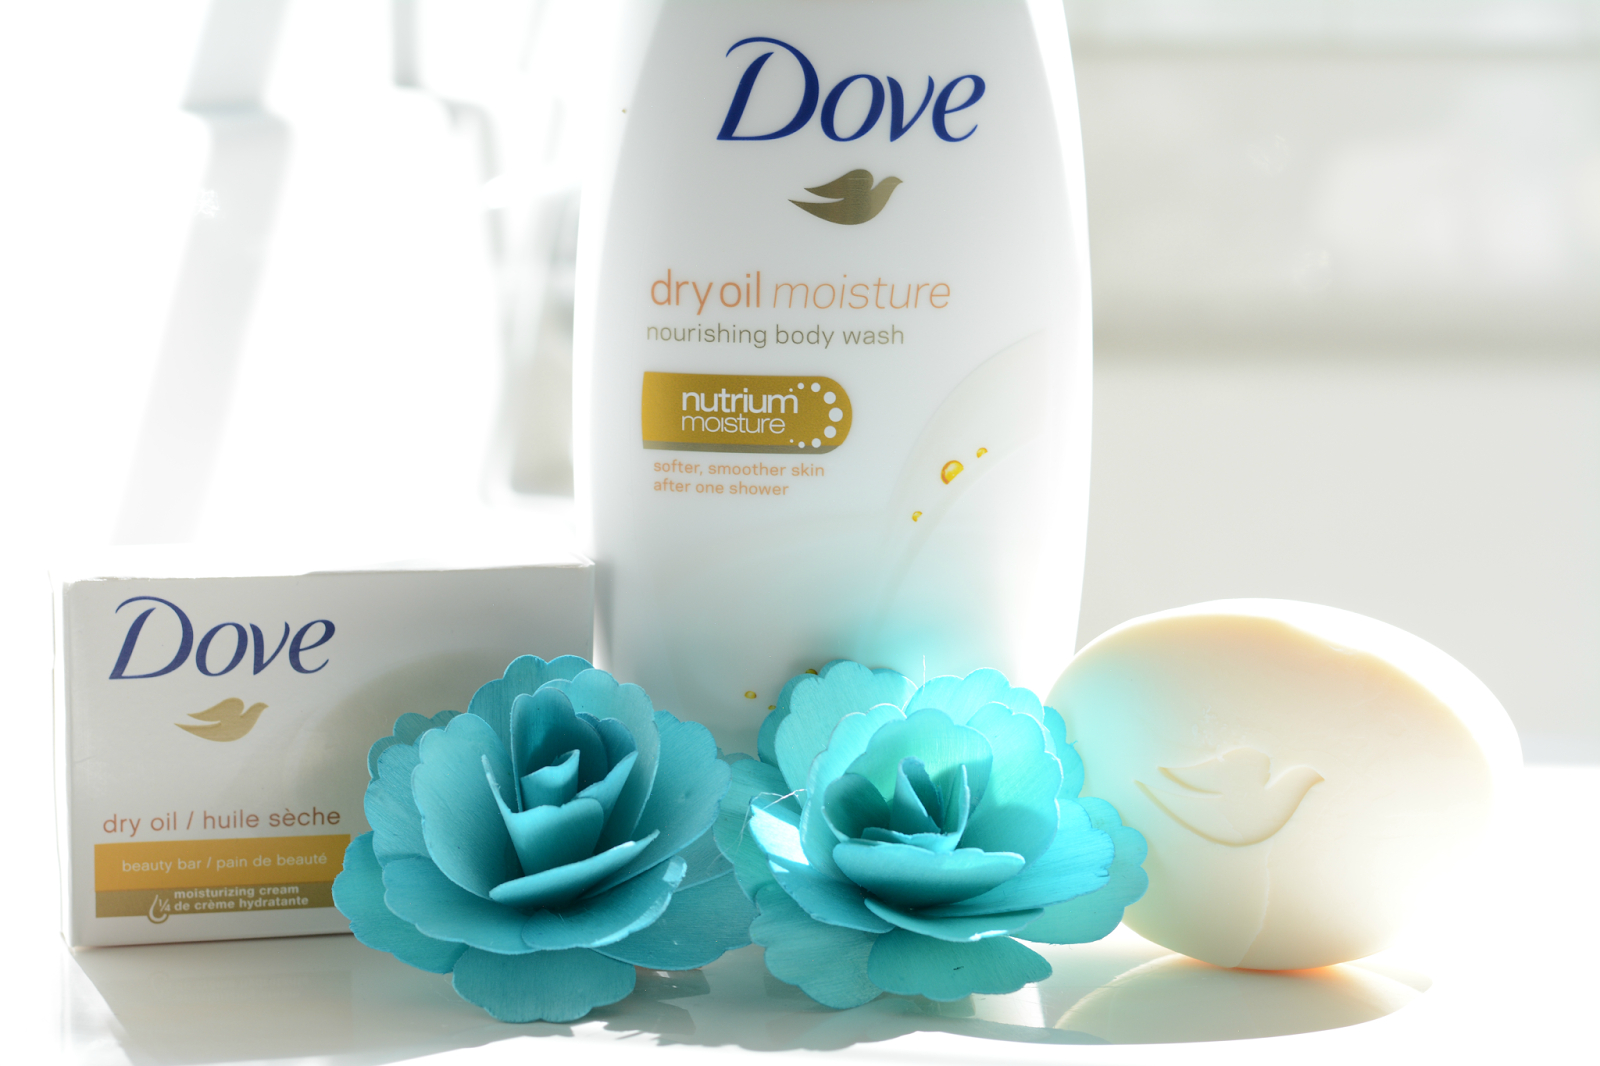 new dove dry oil collection